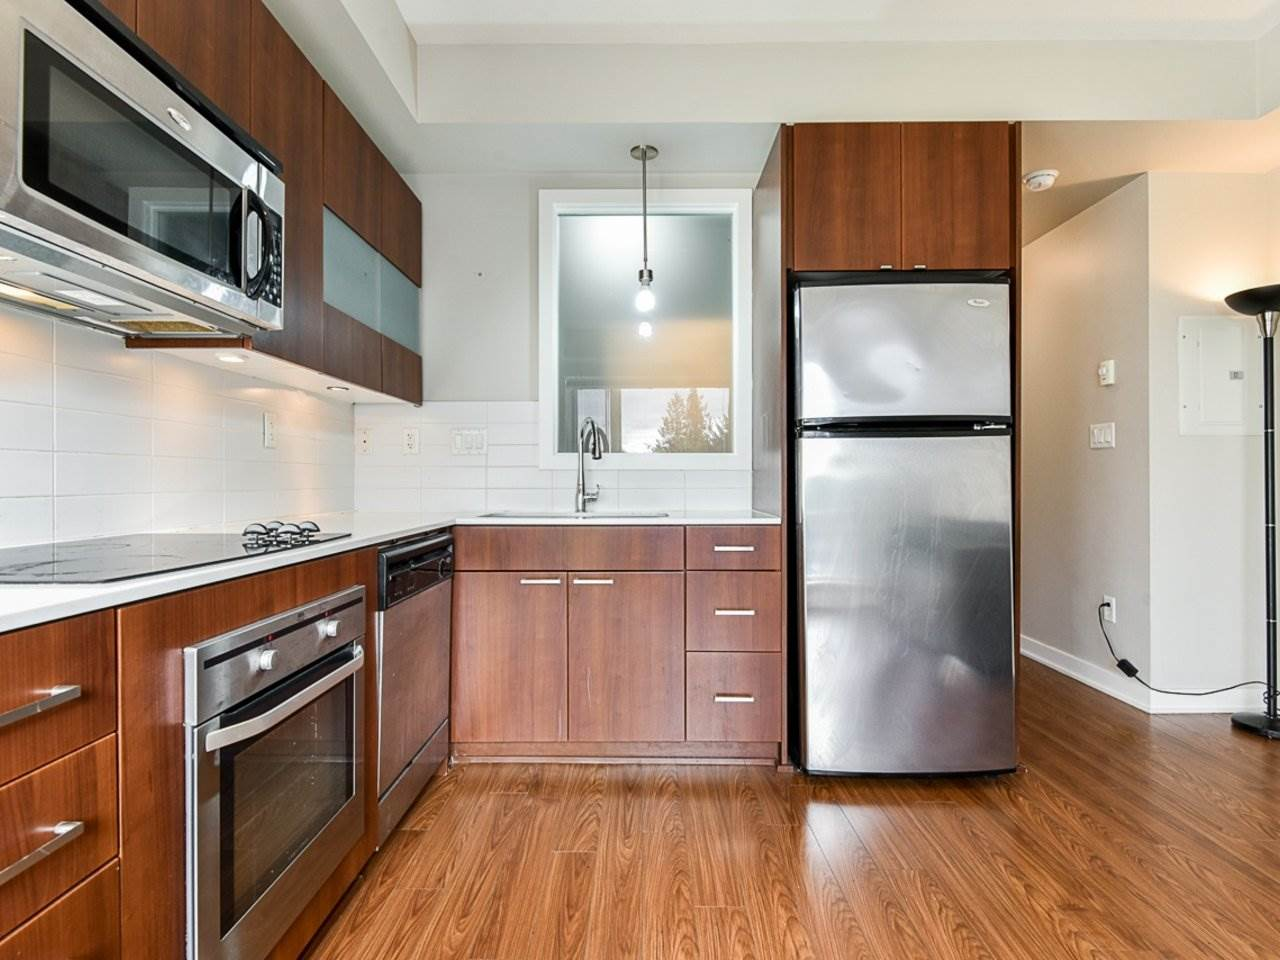 329 13321 102A AVENUE - Whalley Apartment/Condo for sale, 1 Bedroom (R2508611) - #8